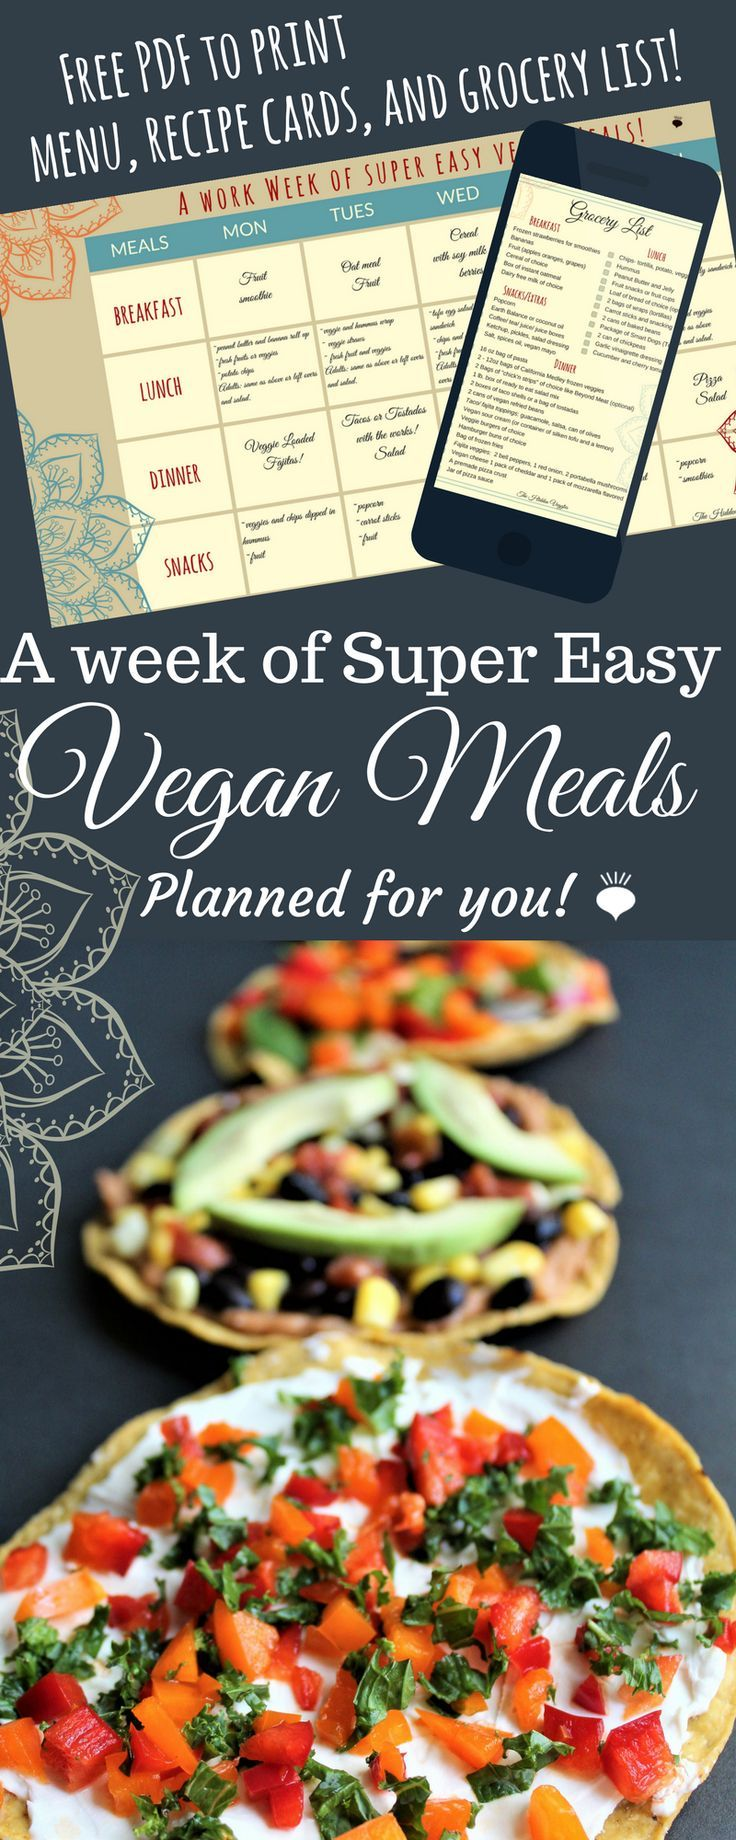 Easy Vegan And Gluten Free Meals Planed For You Free Pdf And Printables Includes Meal Planning Calendar Easy Vegan Meal Plan Vegan Meal Plans Meal Planning